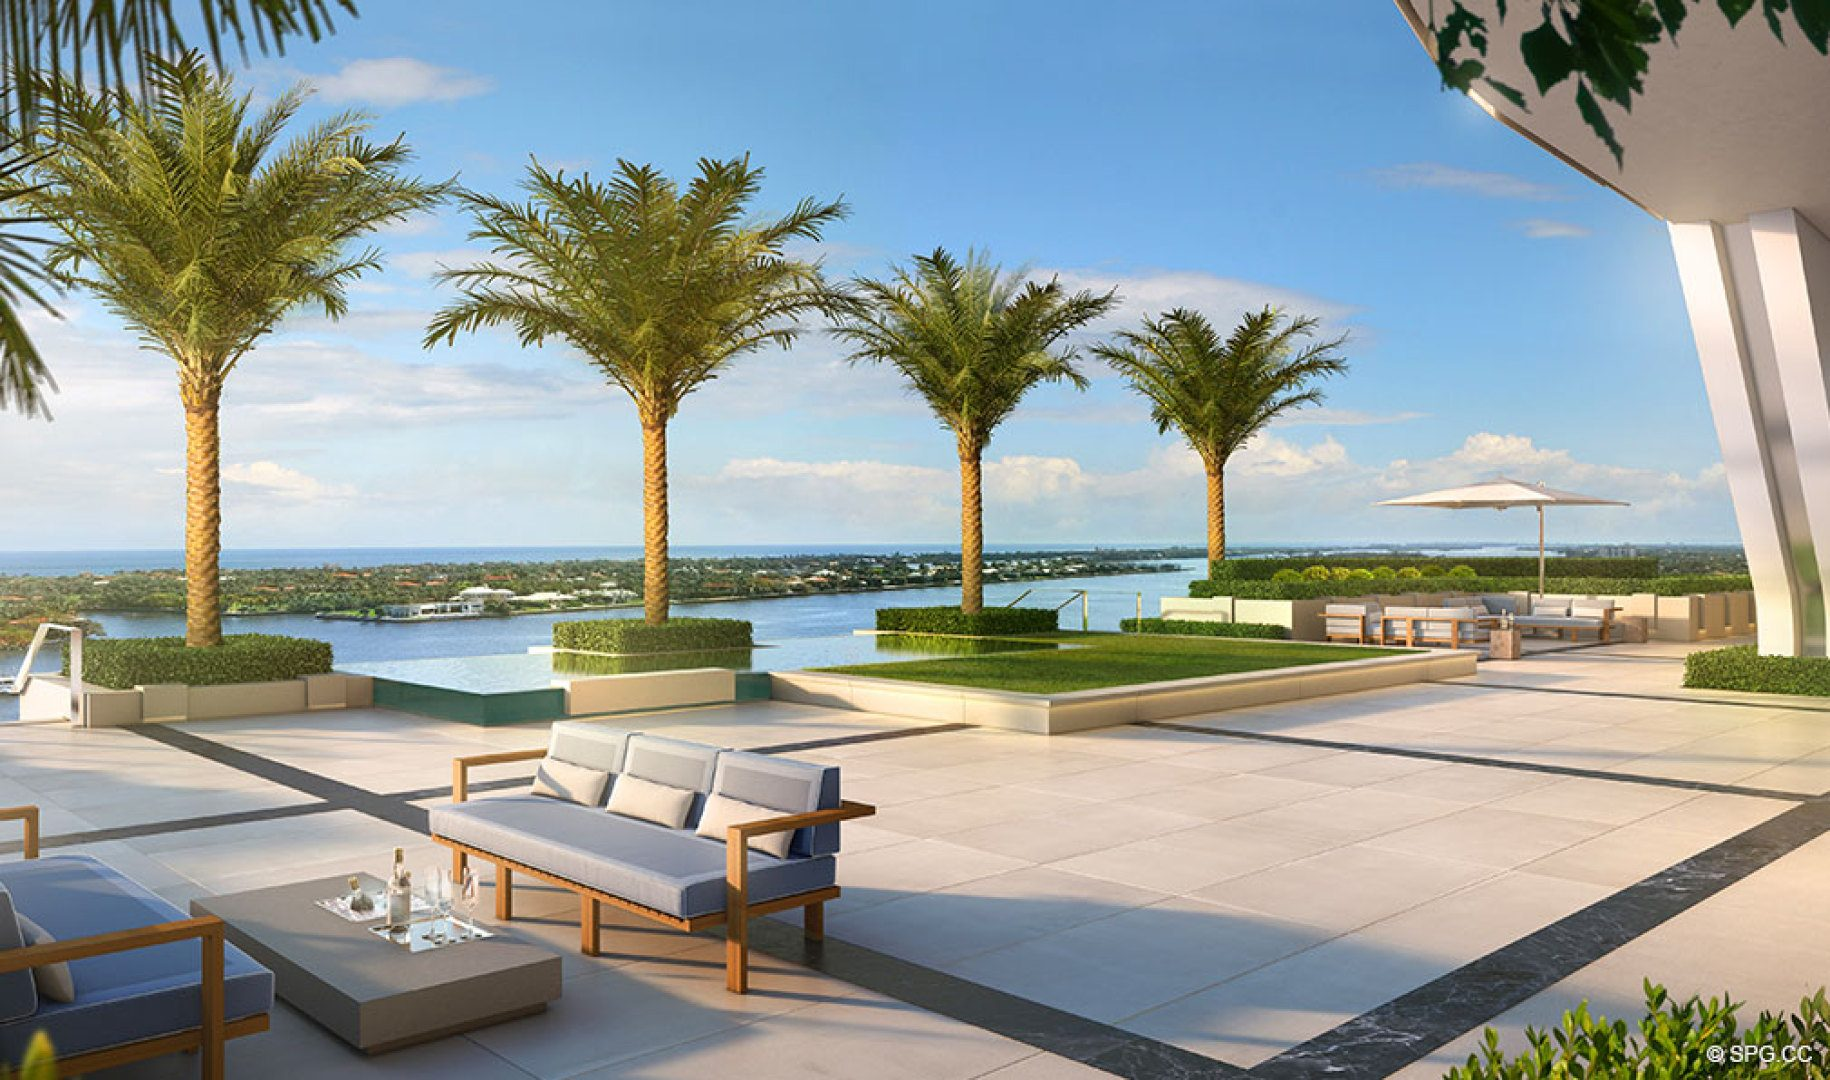 Gorgeous Amenity Views at The Bristol, Luxury Waterfront Condos in West Palm Beach, Florida 33401